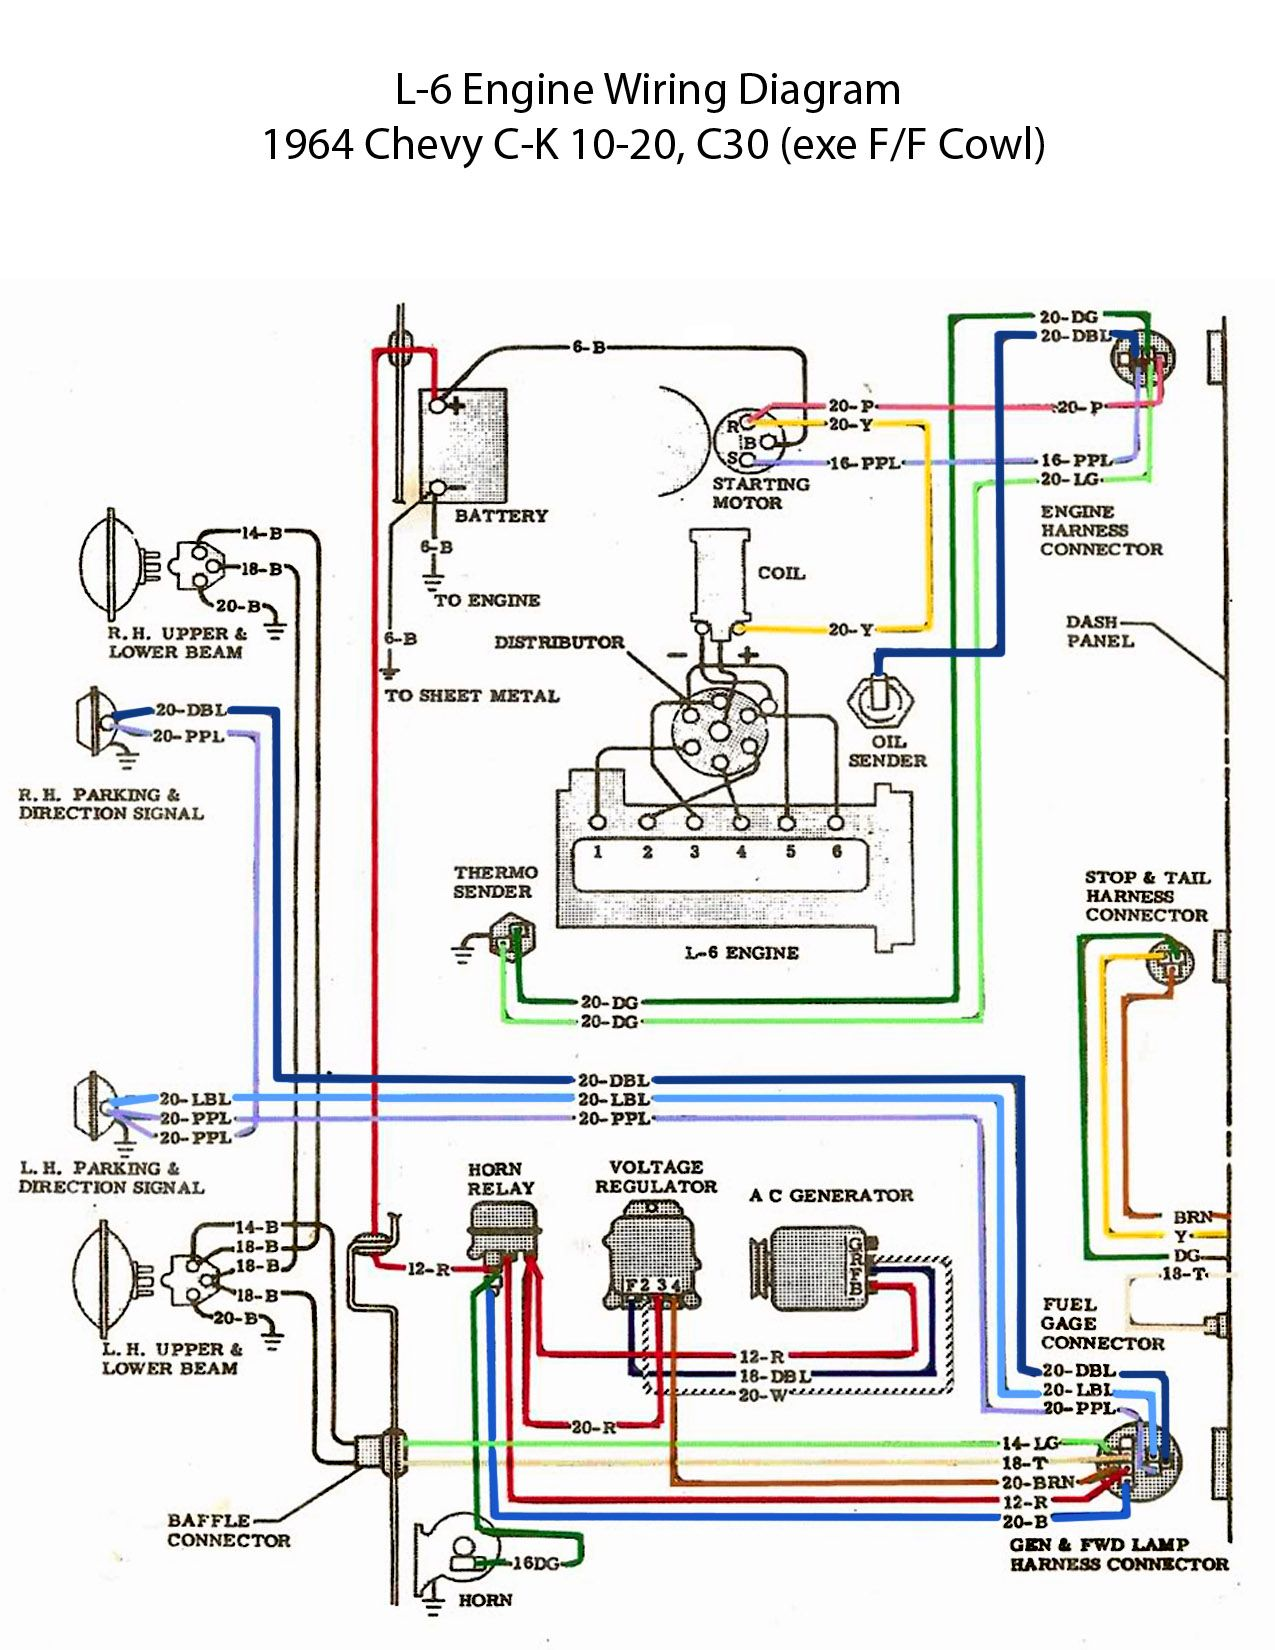 hight resolution of wrg 9914 6 5 diesel fuel heater wiring diagram6 5 diesel fuel heater wiring diagram